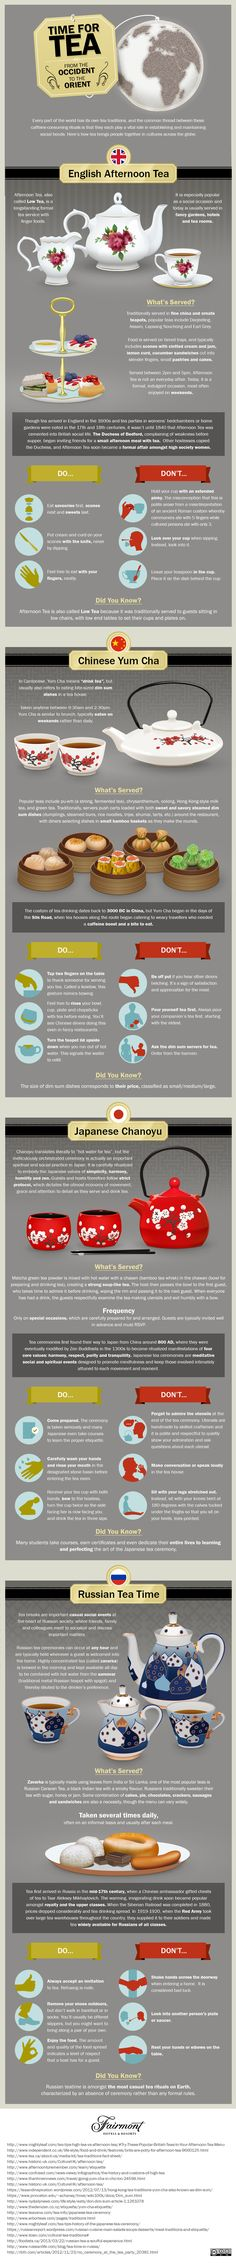 Time for Tea Infographic by Csaba Gyulai